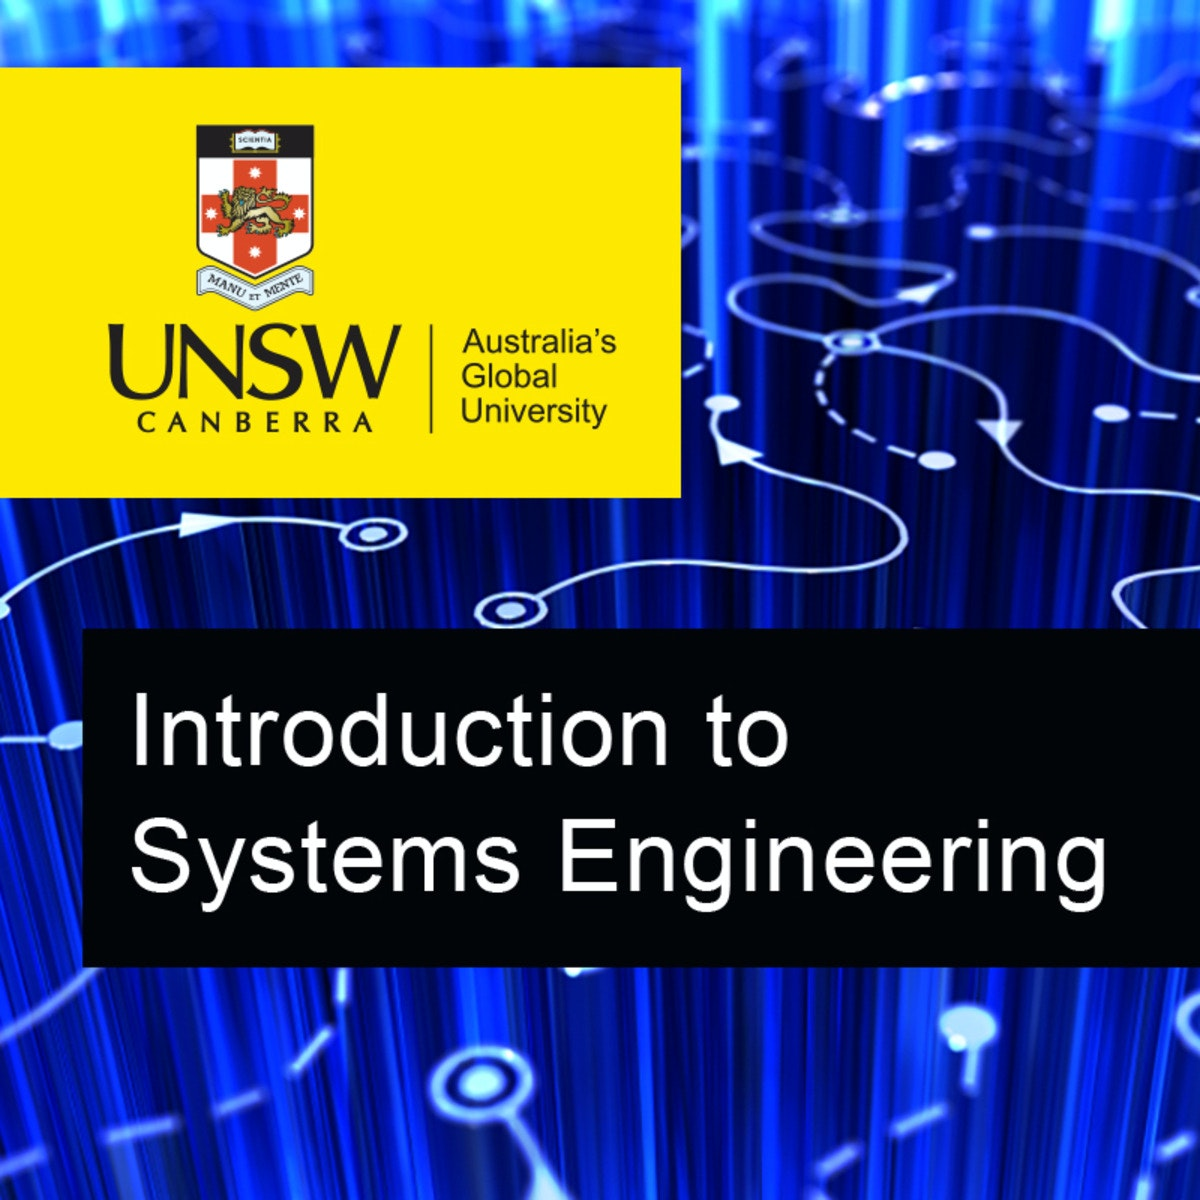 introduction to systems engineering Part 1 also includes an introduction to some of the emerging aspects of systems engineering and a discussion of how these are transforming the discipline.